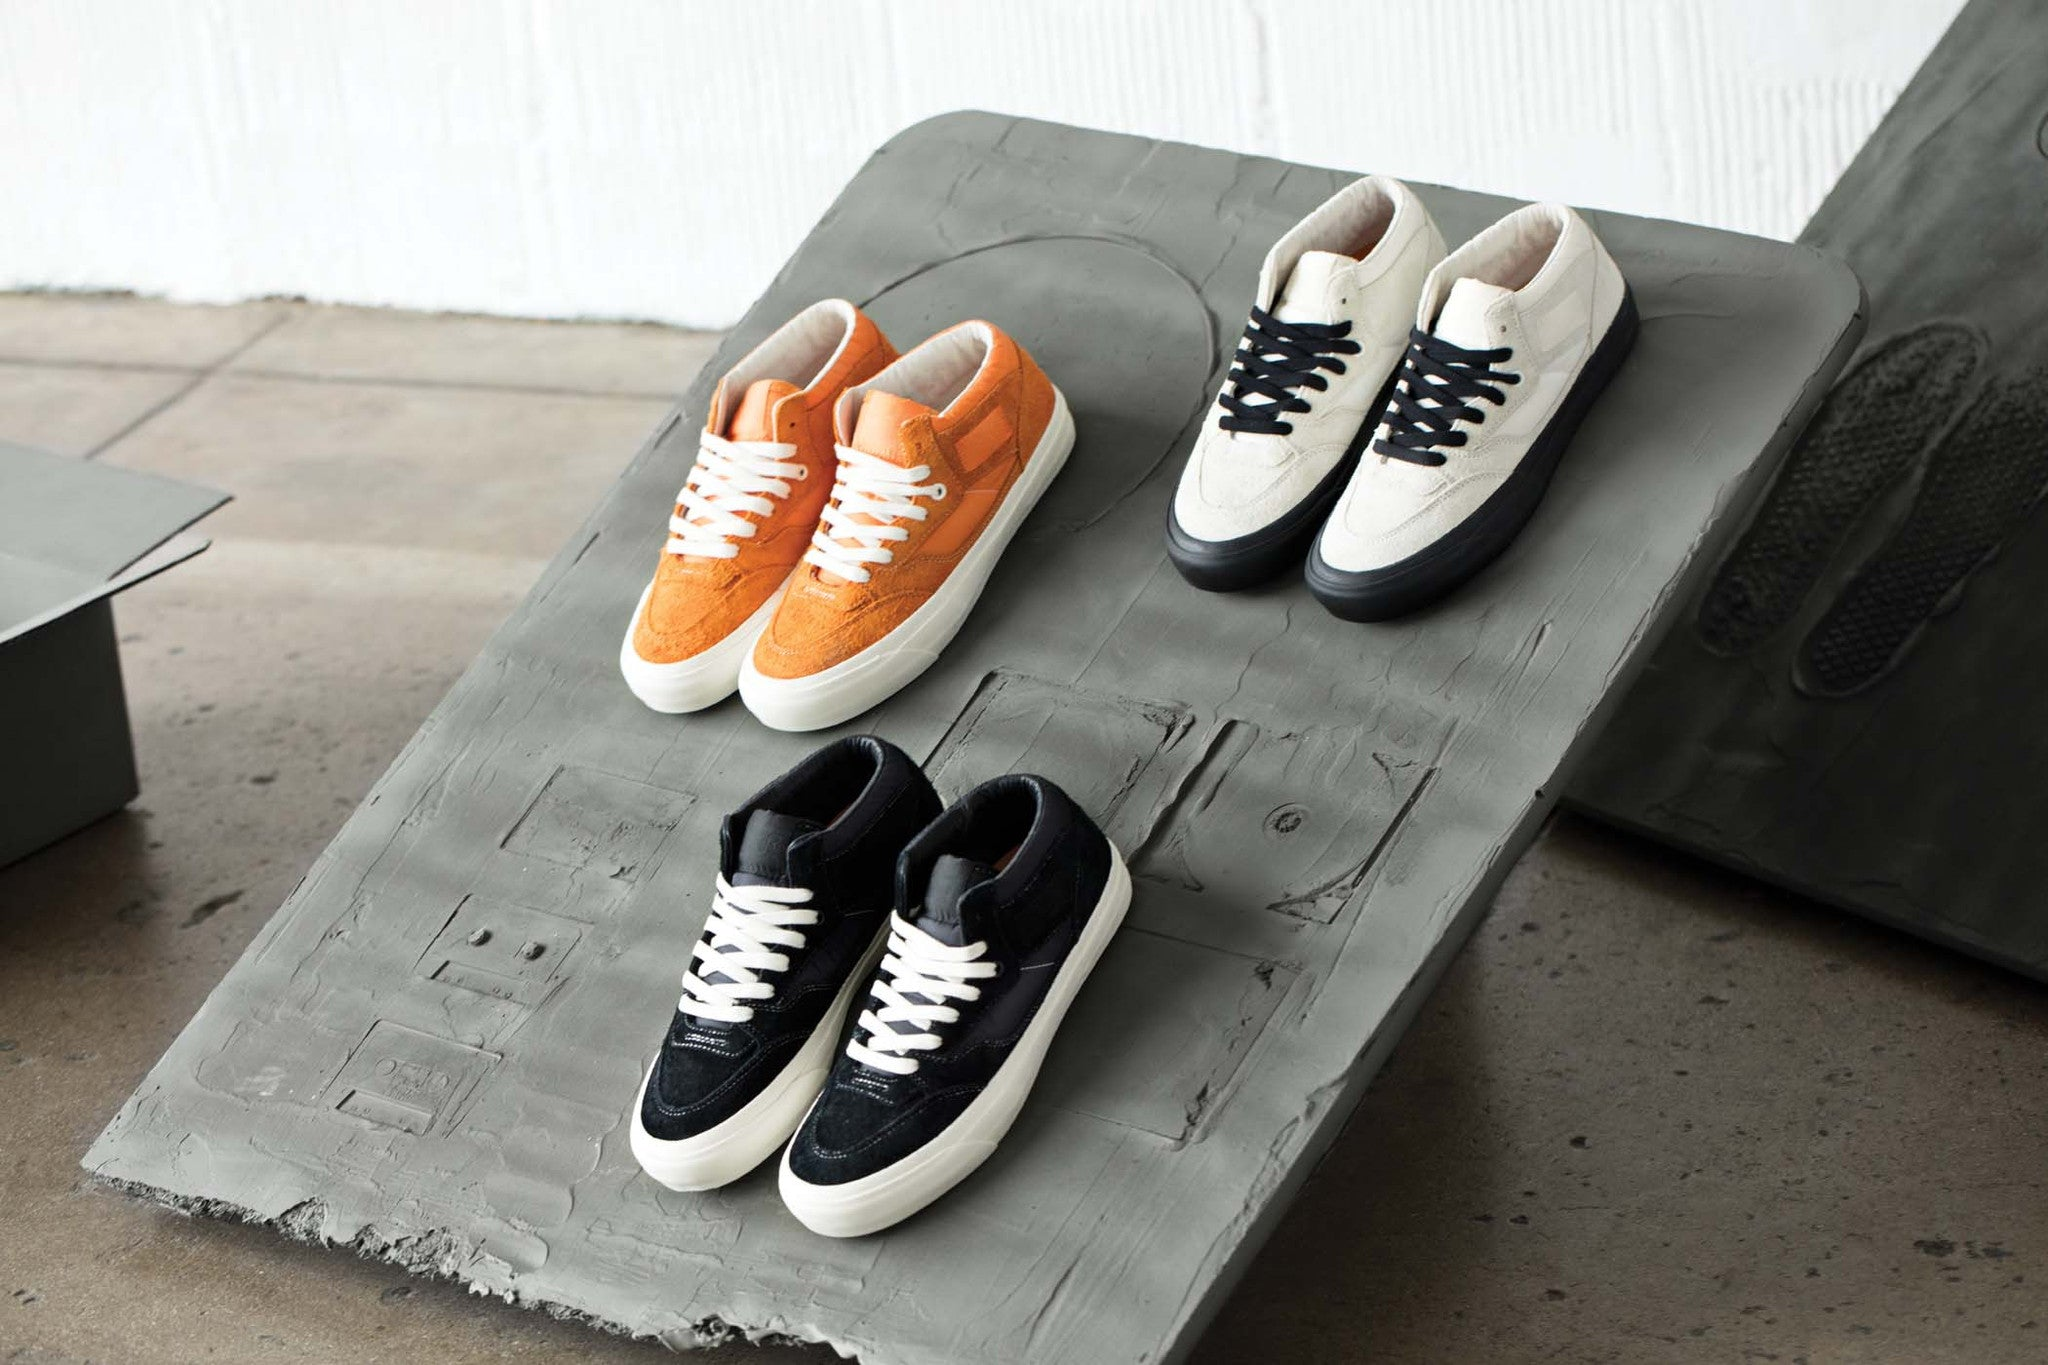 d537bc15 The collection features a Coaches Jacket and Long Sleeve Tees matching back  to the black, orange and white colorways of the footwear.